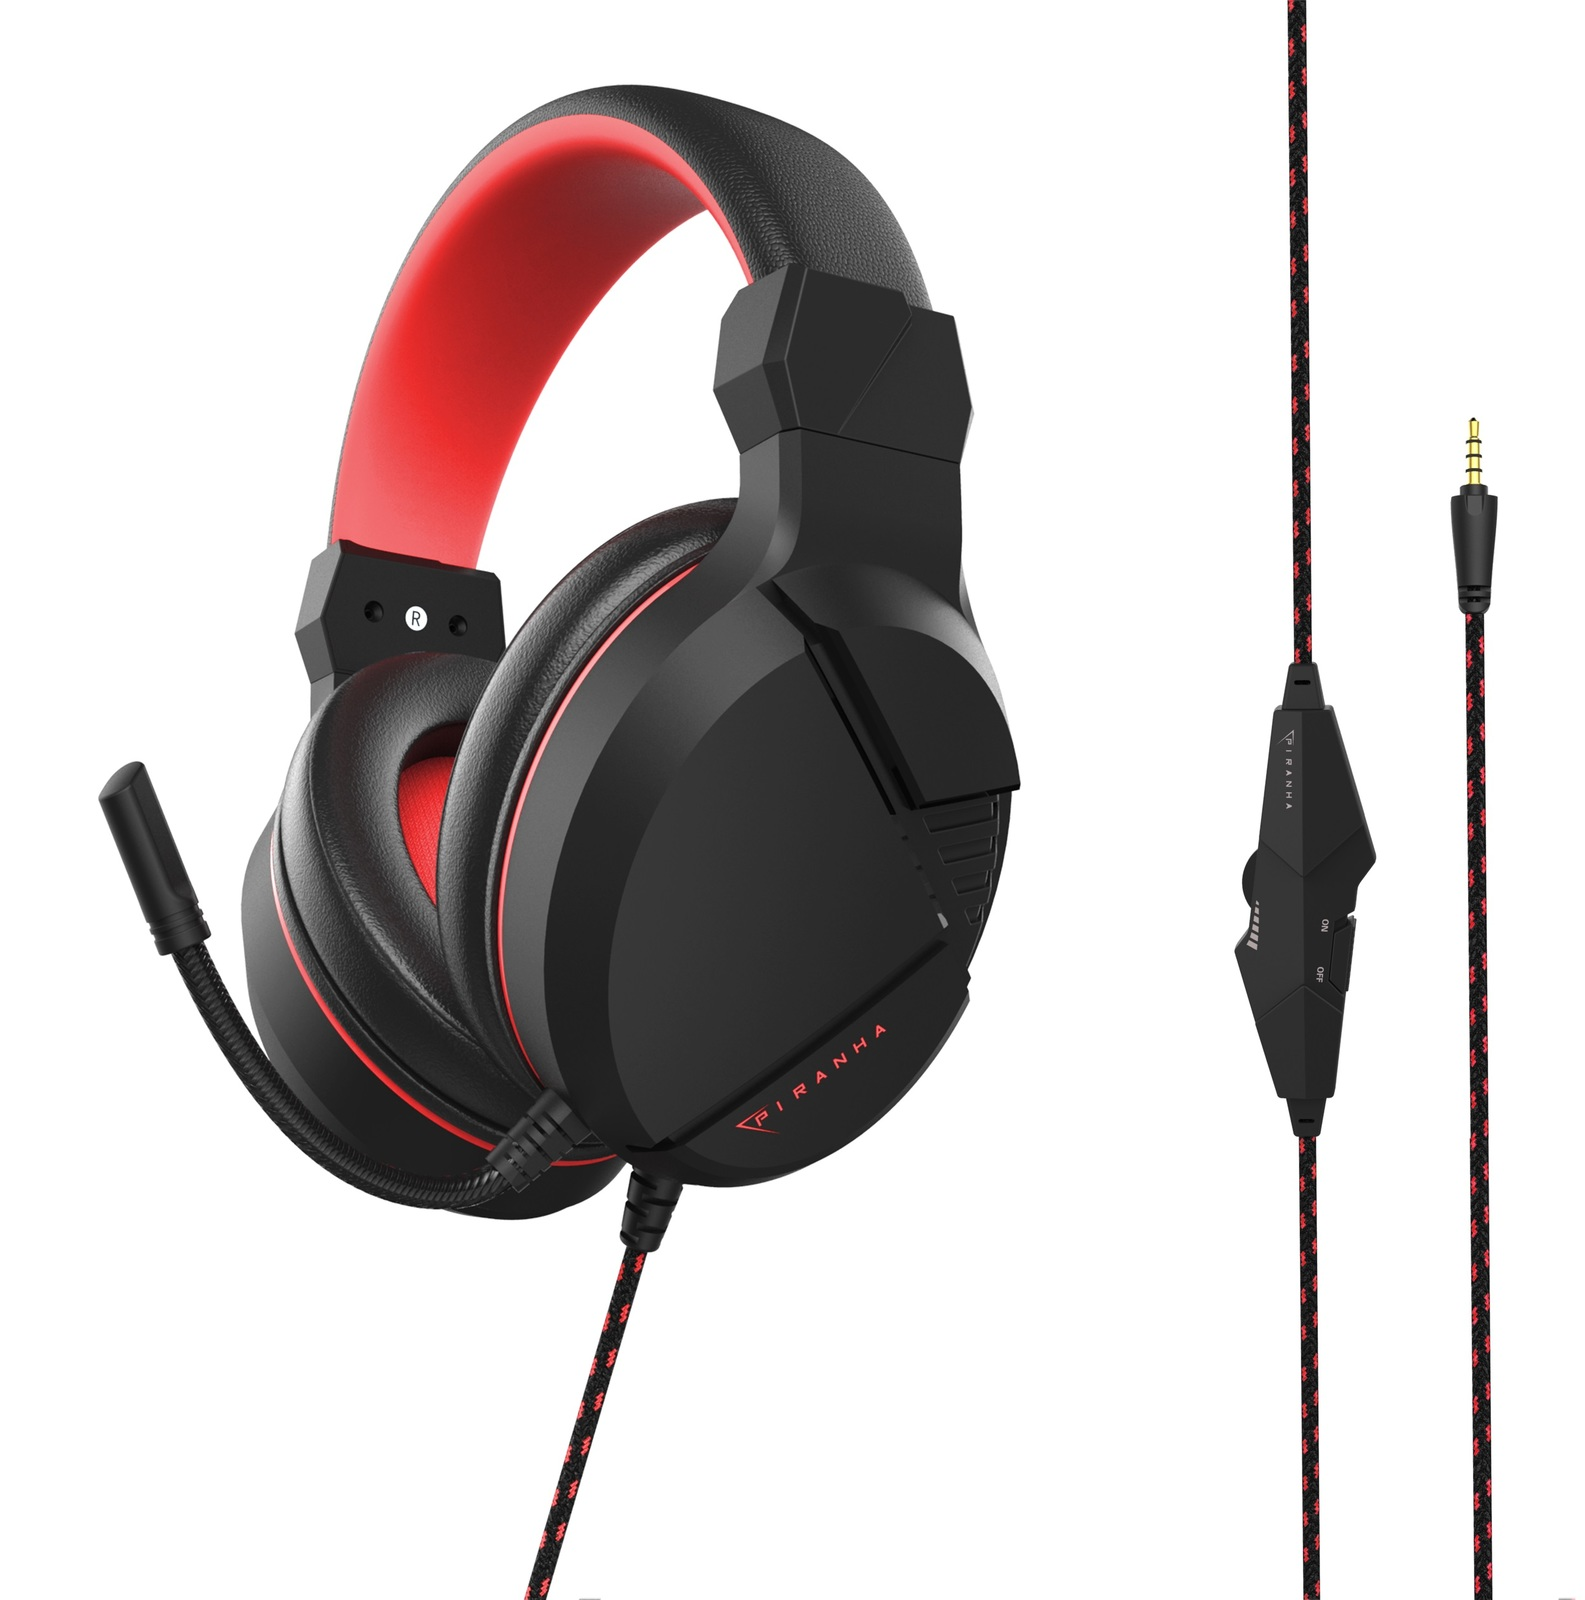 Piranha PC40 Gaming headset for PC image